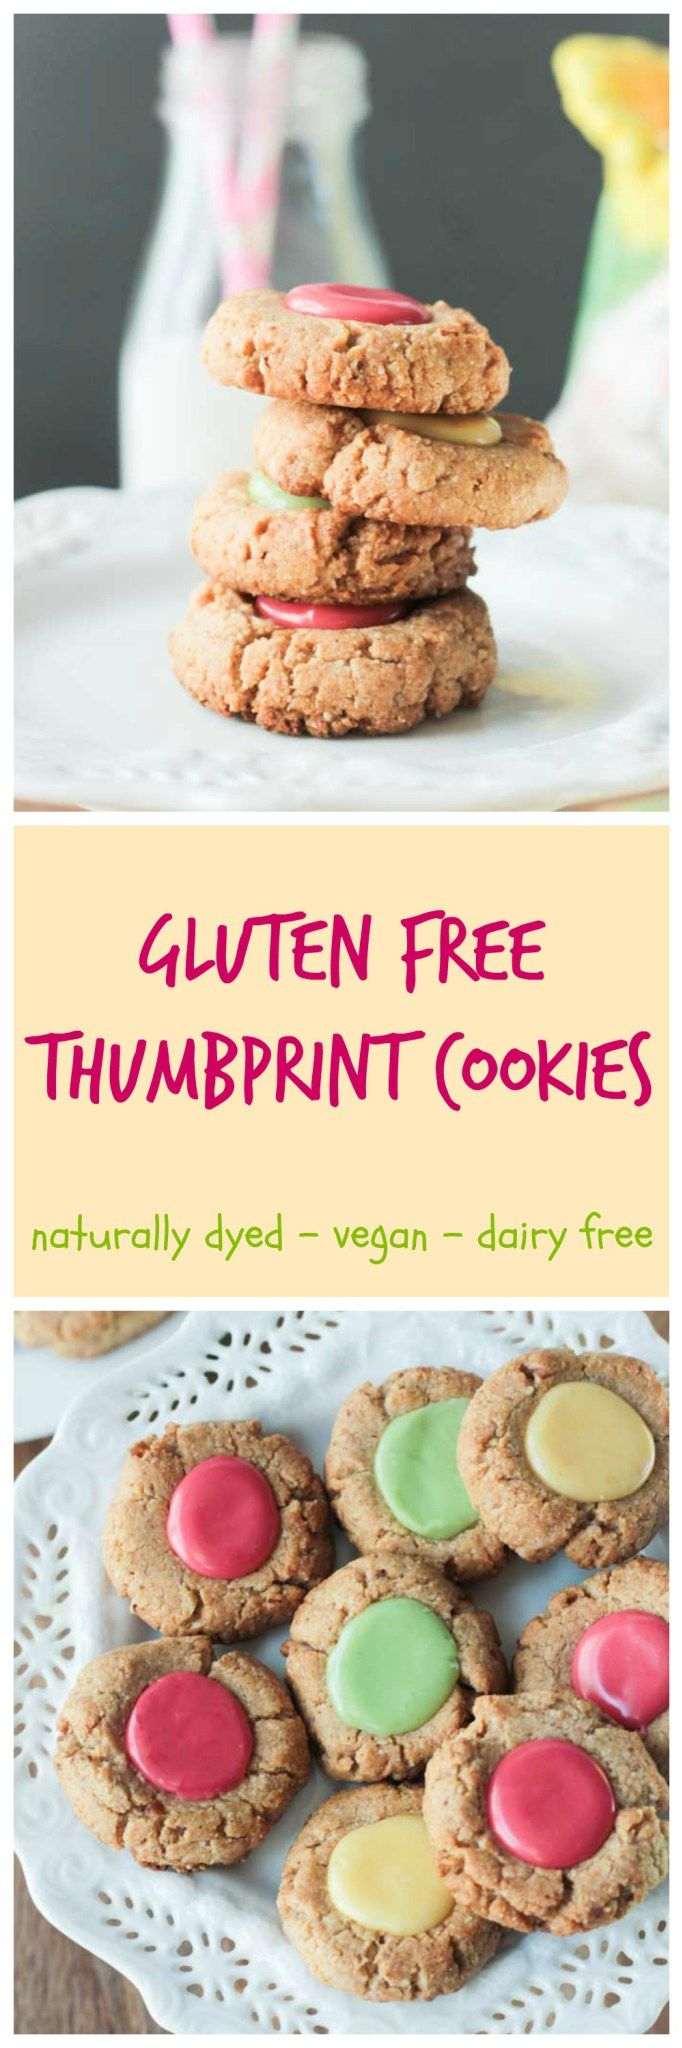 Gluten Free Thumbprint Cookies - Gorgeous pastel thumbprint cookies made with tender gluten free almond flour and naturally dyed icing,. No dairy, no eggs, no gluten! Perfect for Easter or anytime of year! #BRMEaster #CleverGirls